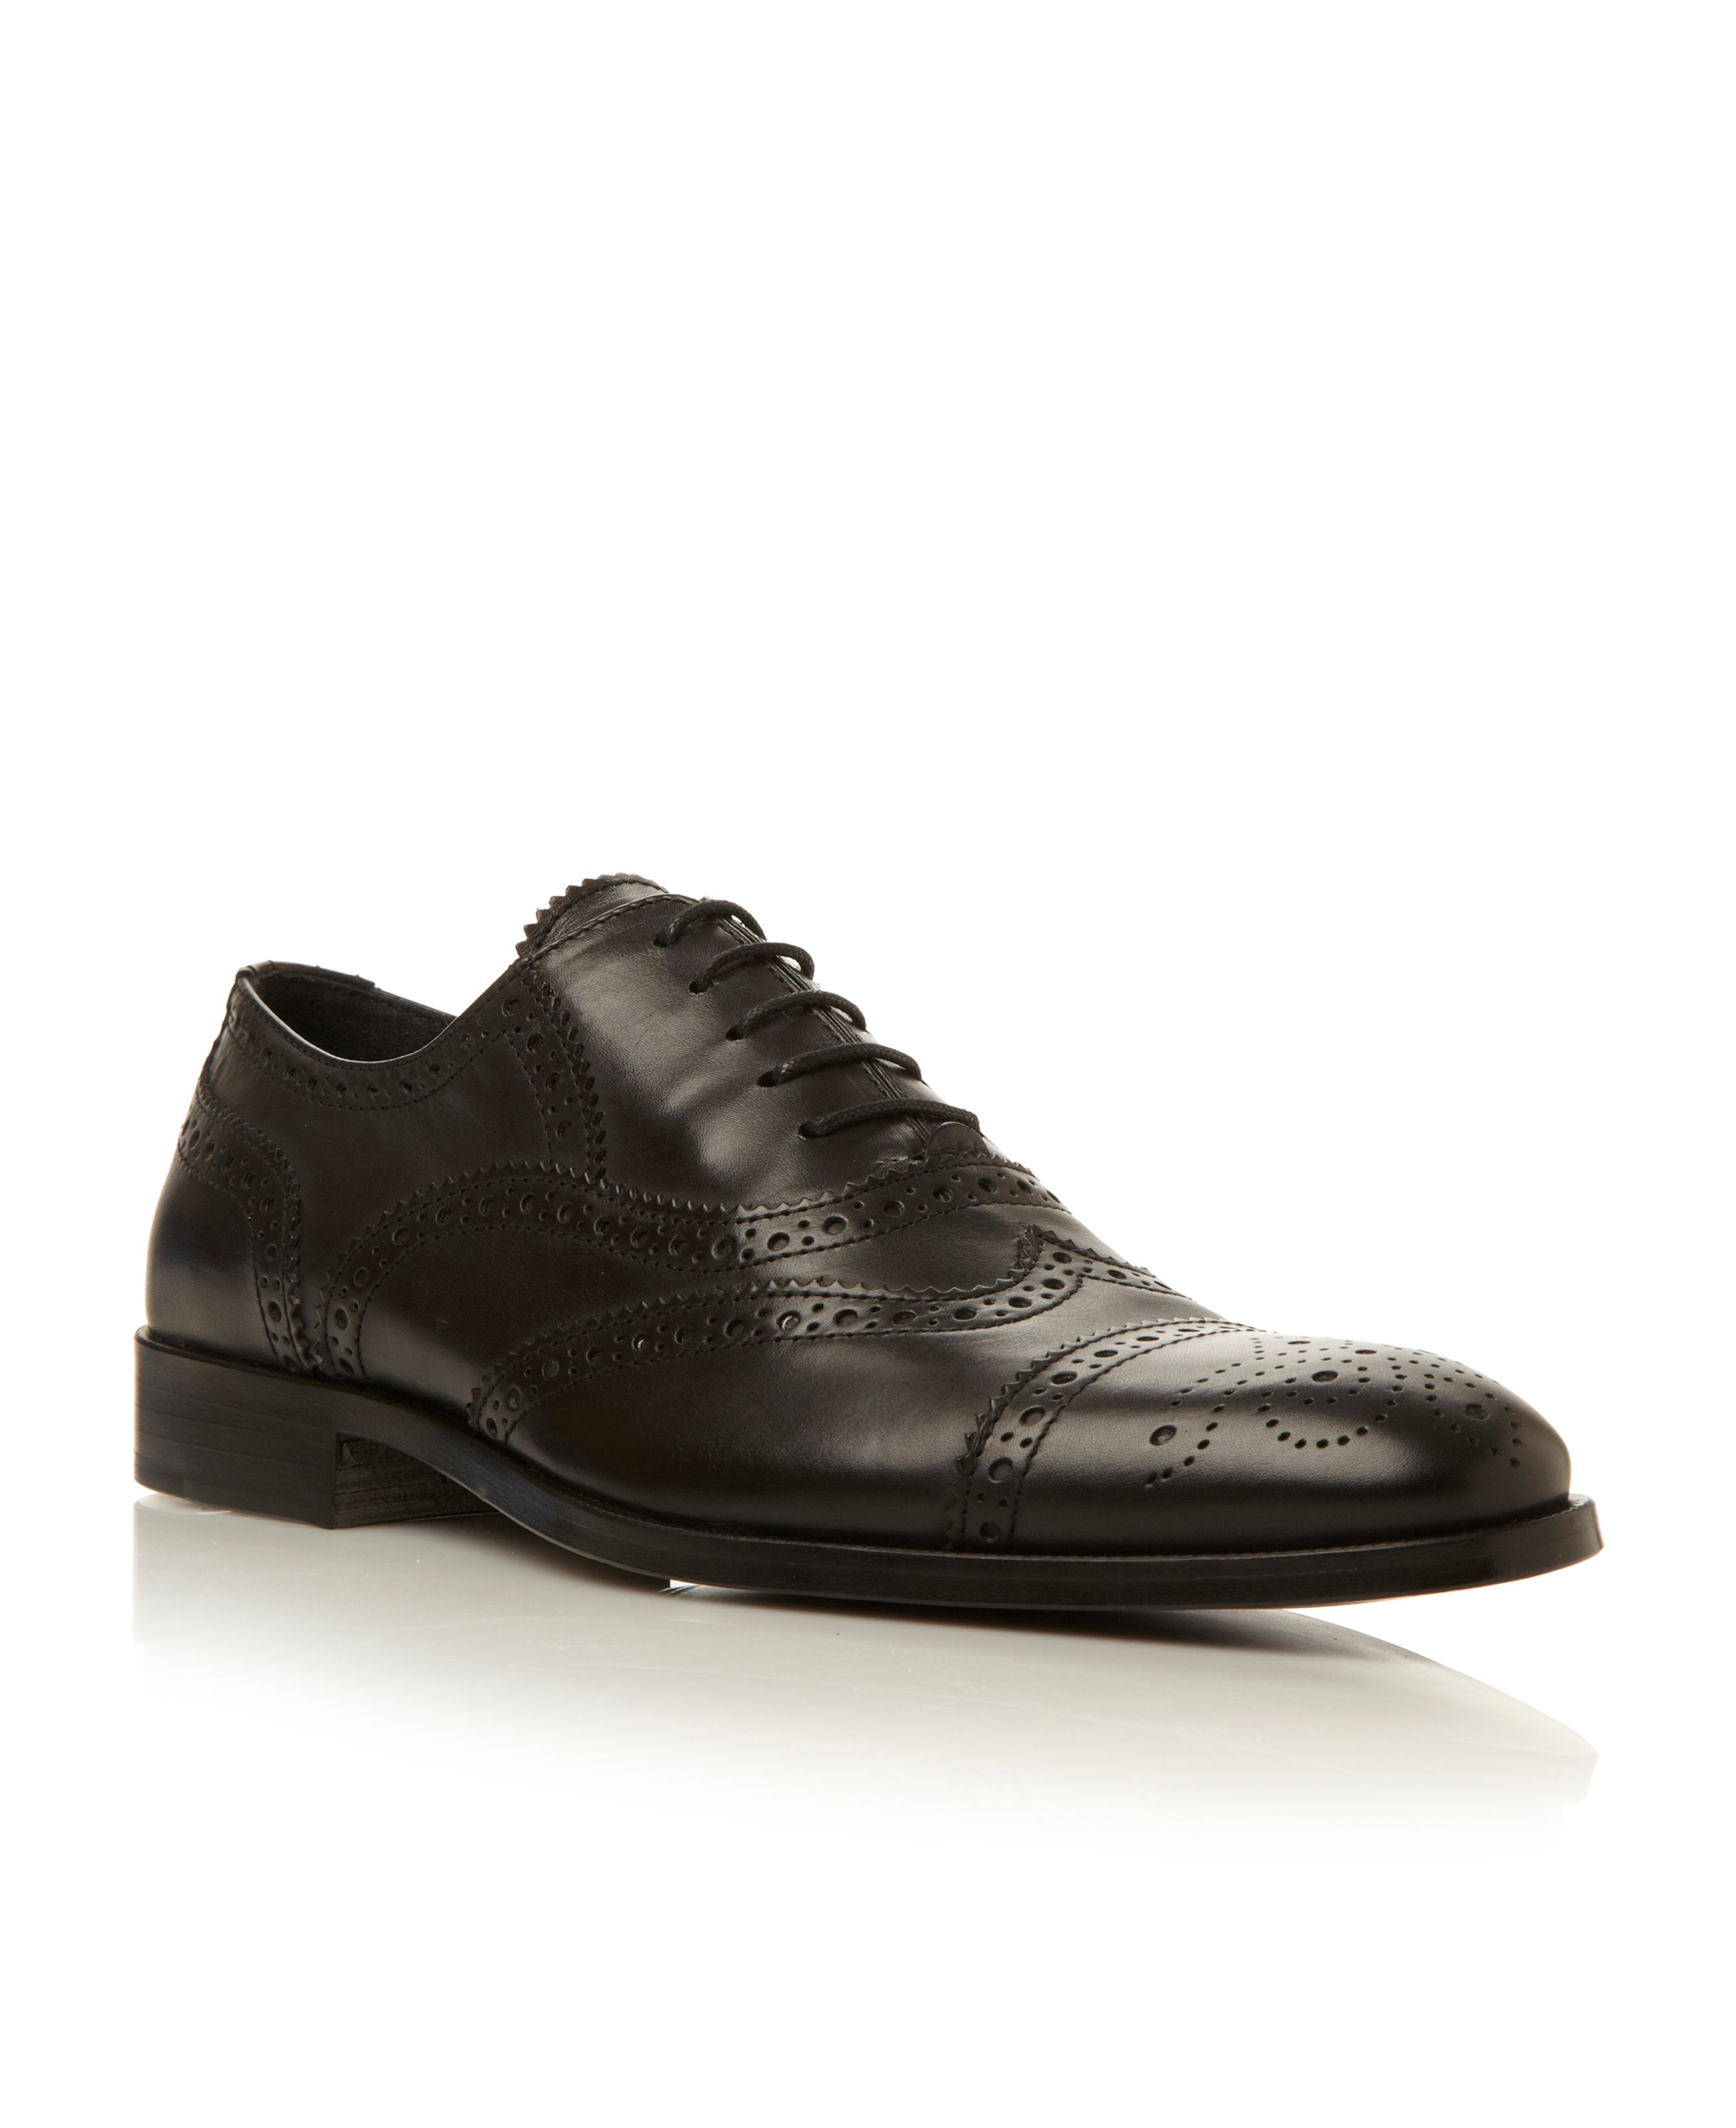 Brake 1 wingtip brogue lace up shoes